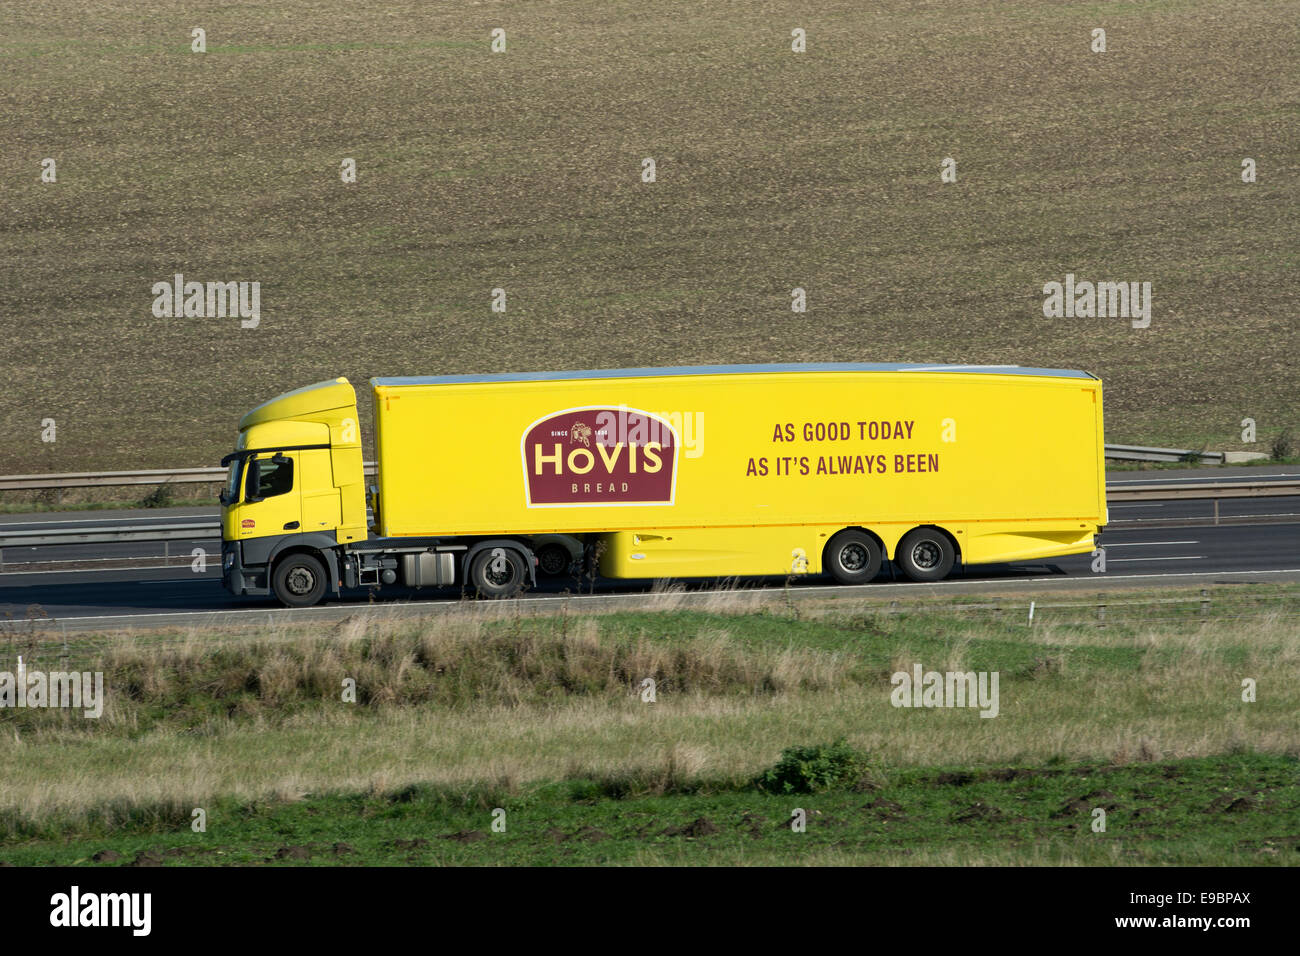 Hovis bread lorry on M40 motorway, Warwickshire, UK - Stock Image